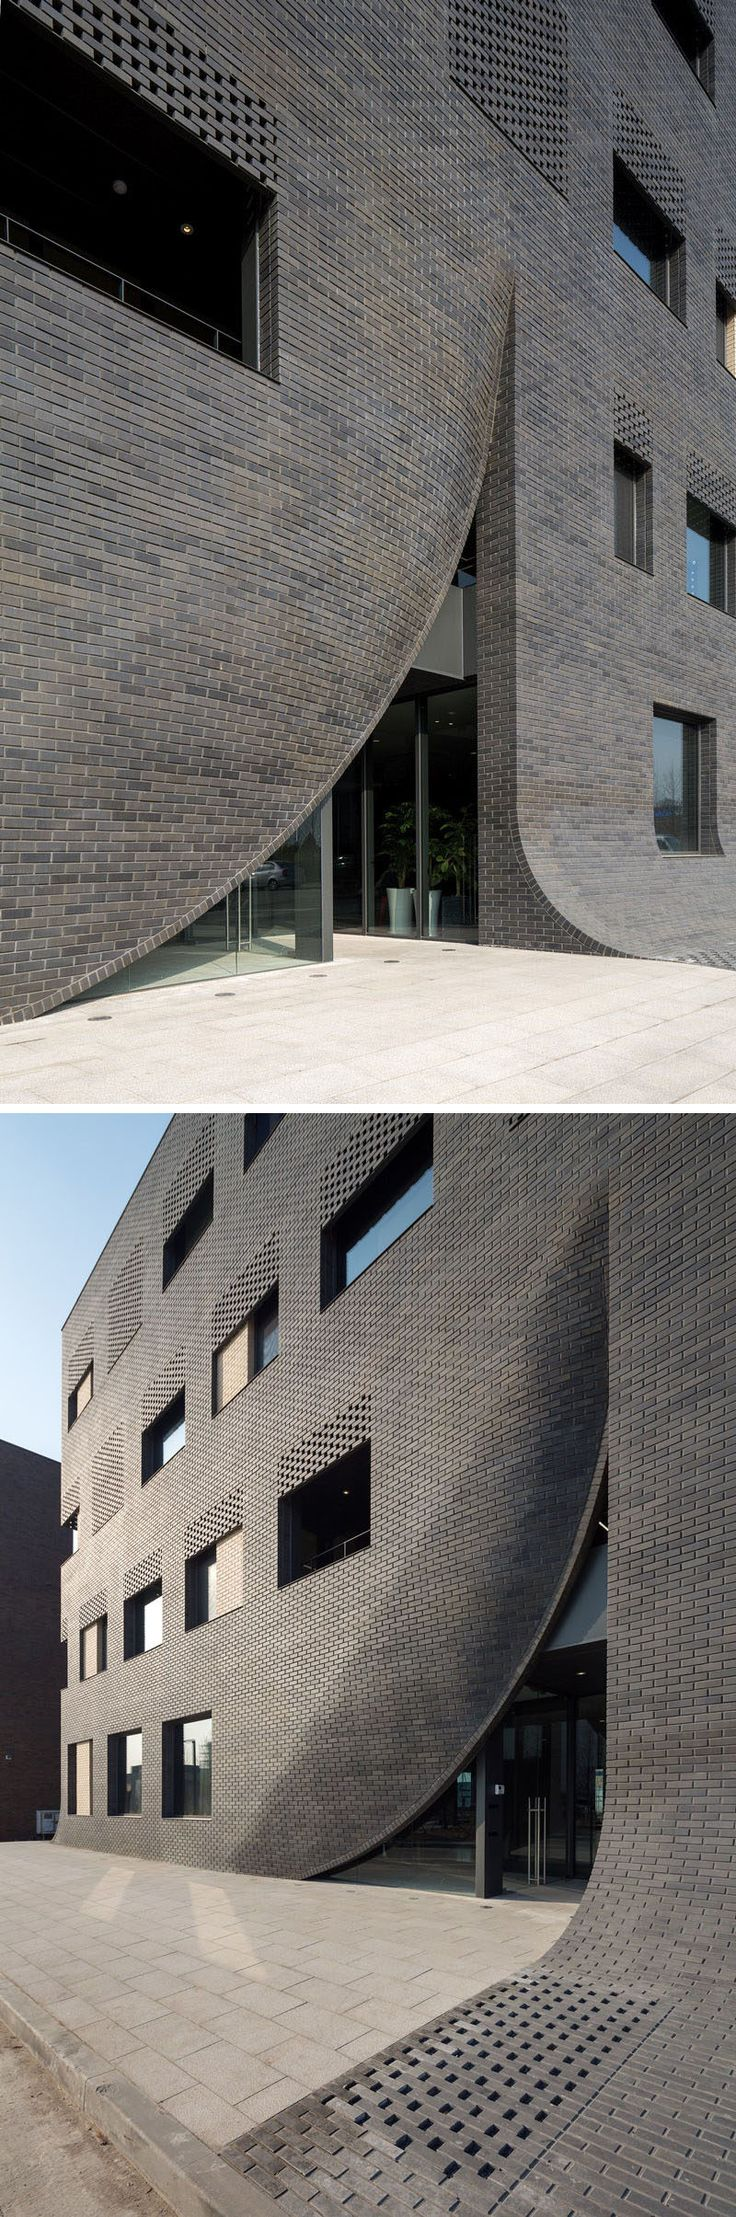 This black brick building has a 'crack' in it to reveal the entrance.